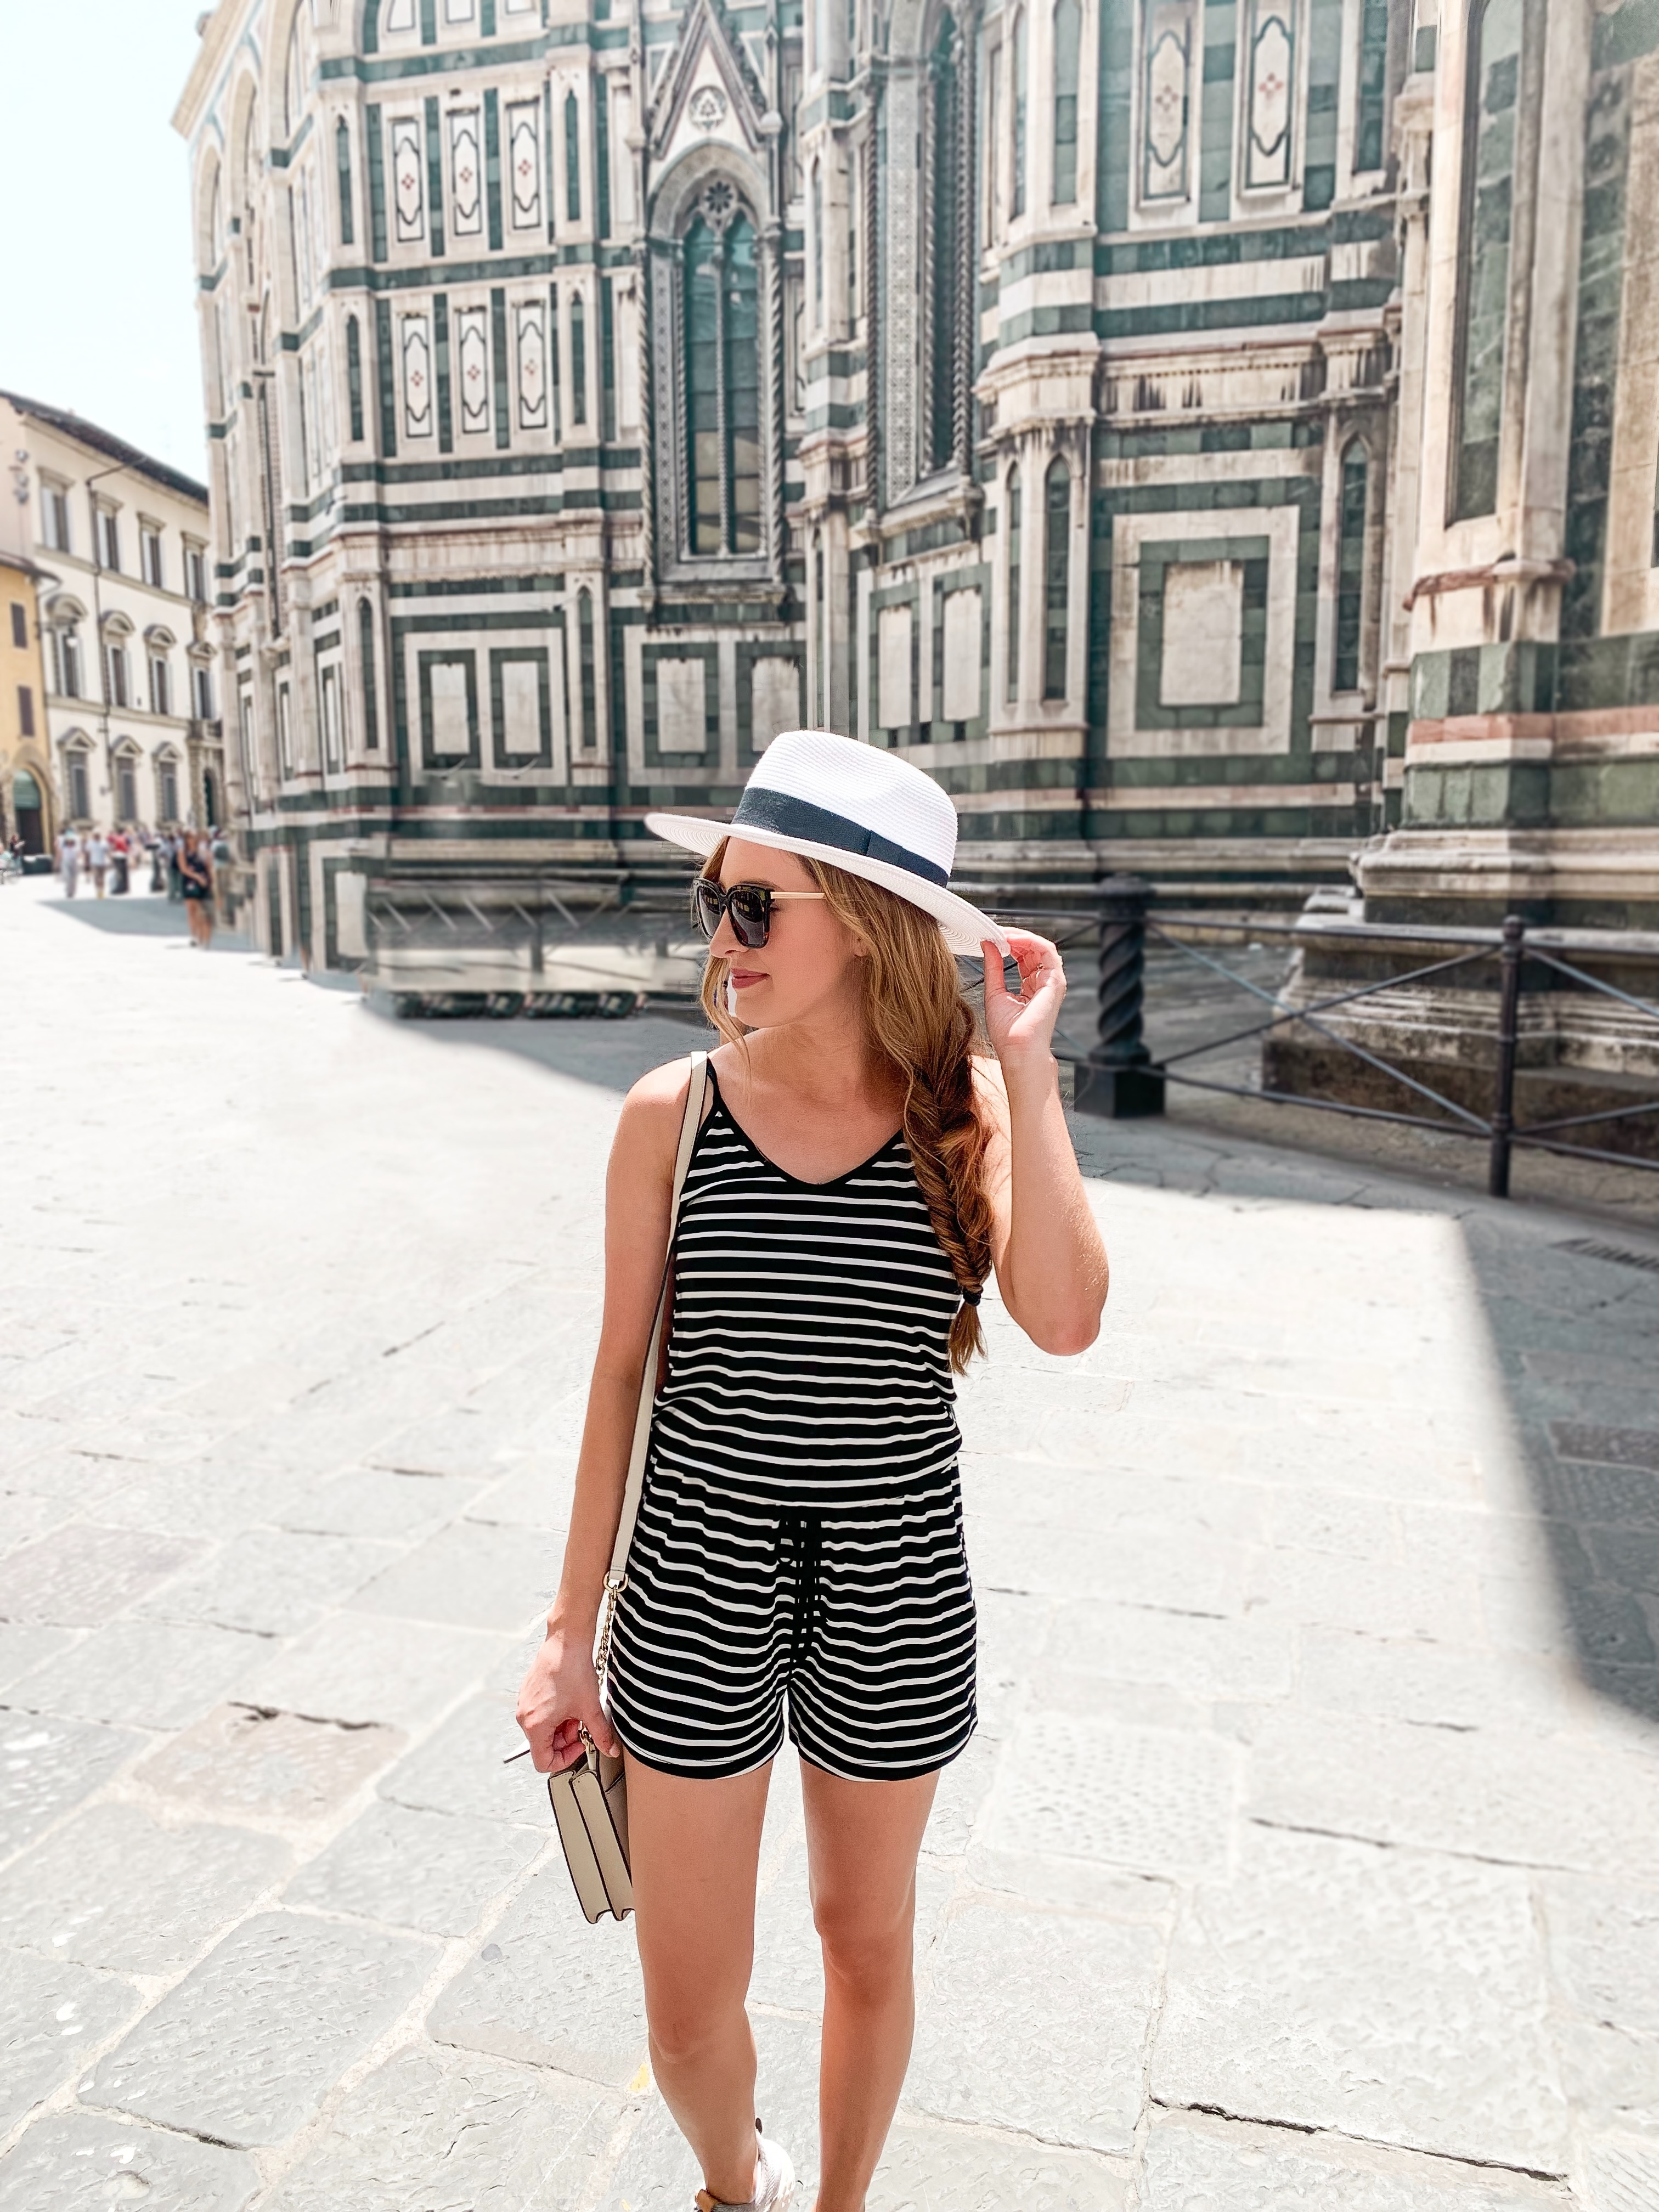 IMG 2198 Facetune 07 06 2019 16 41 59 - Florence Travel Guide